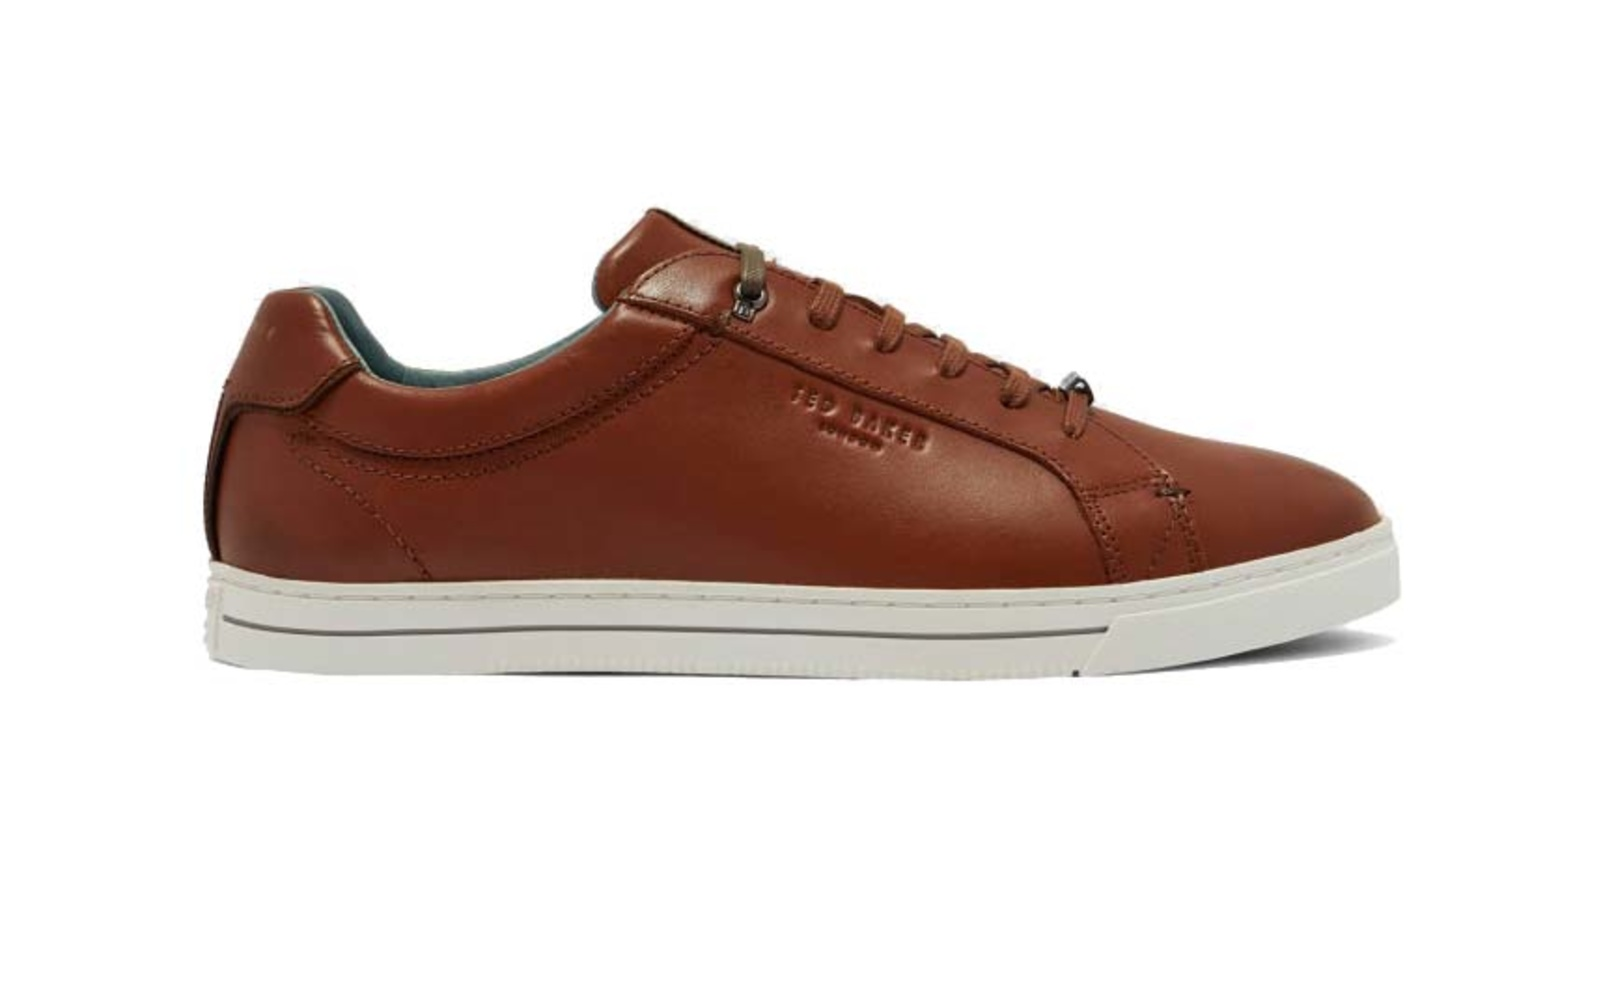 Ted Baker 'Thawne' Burnished Leather Sneakers